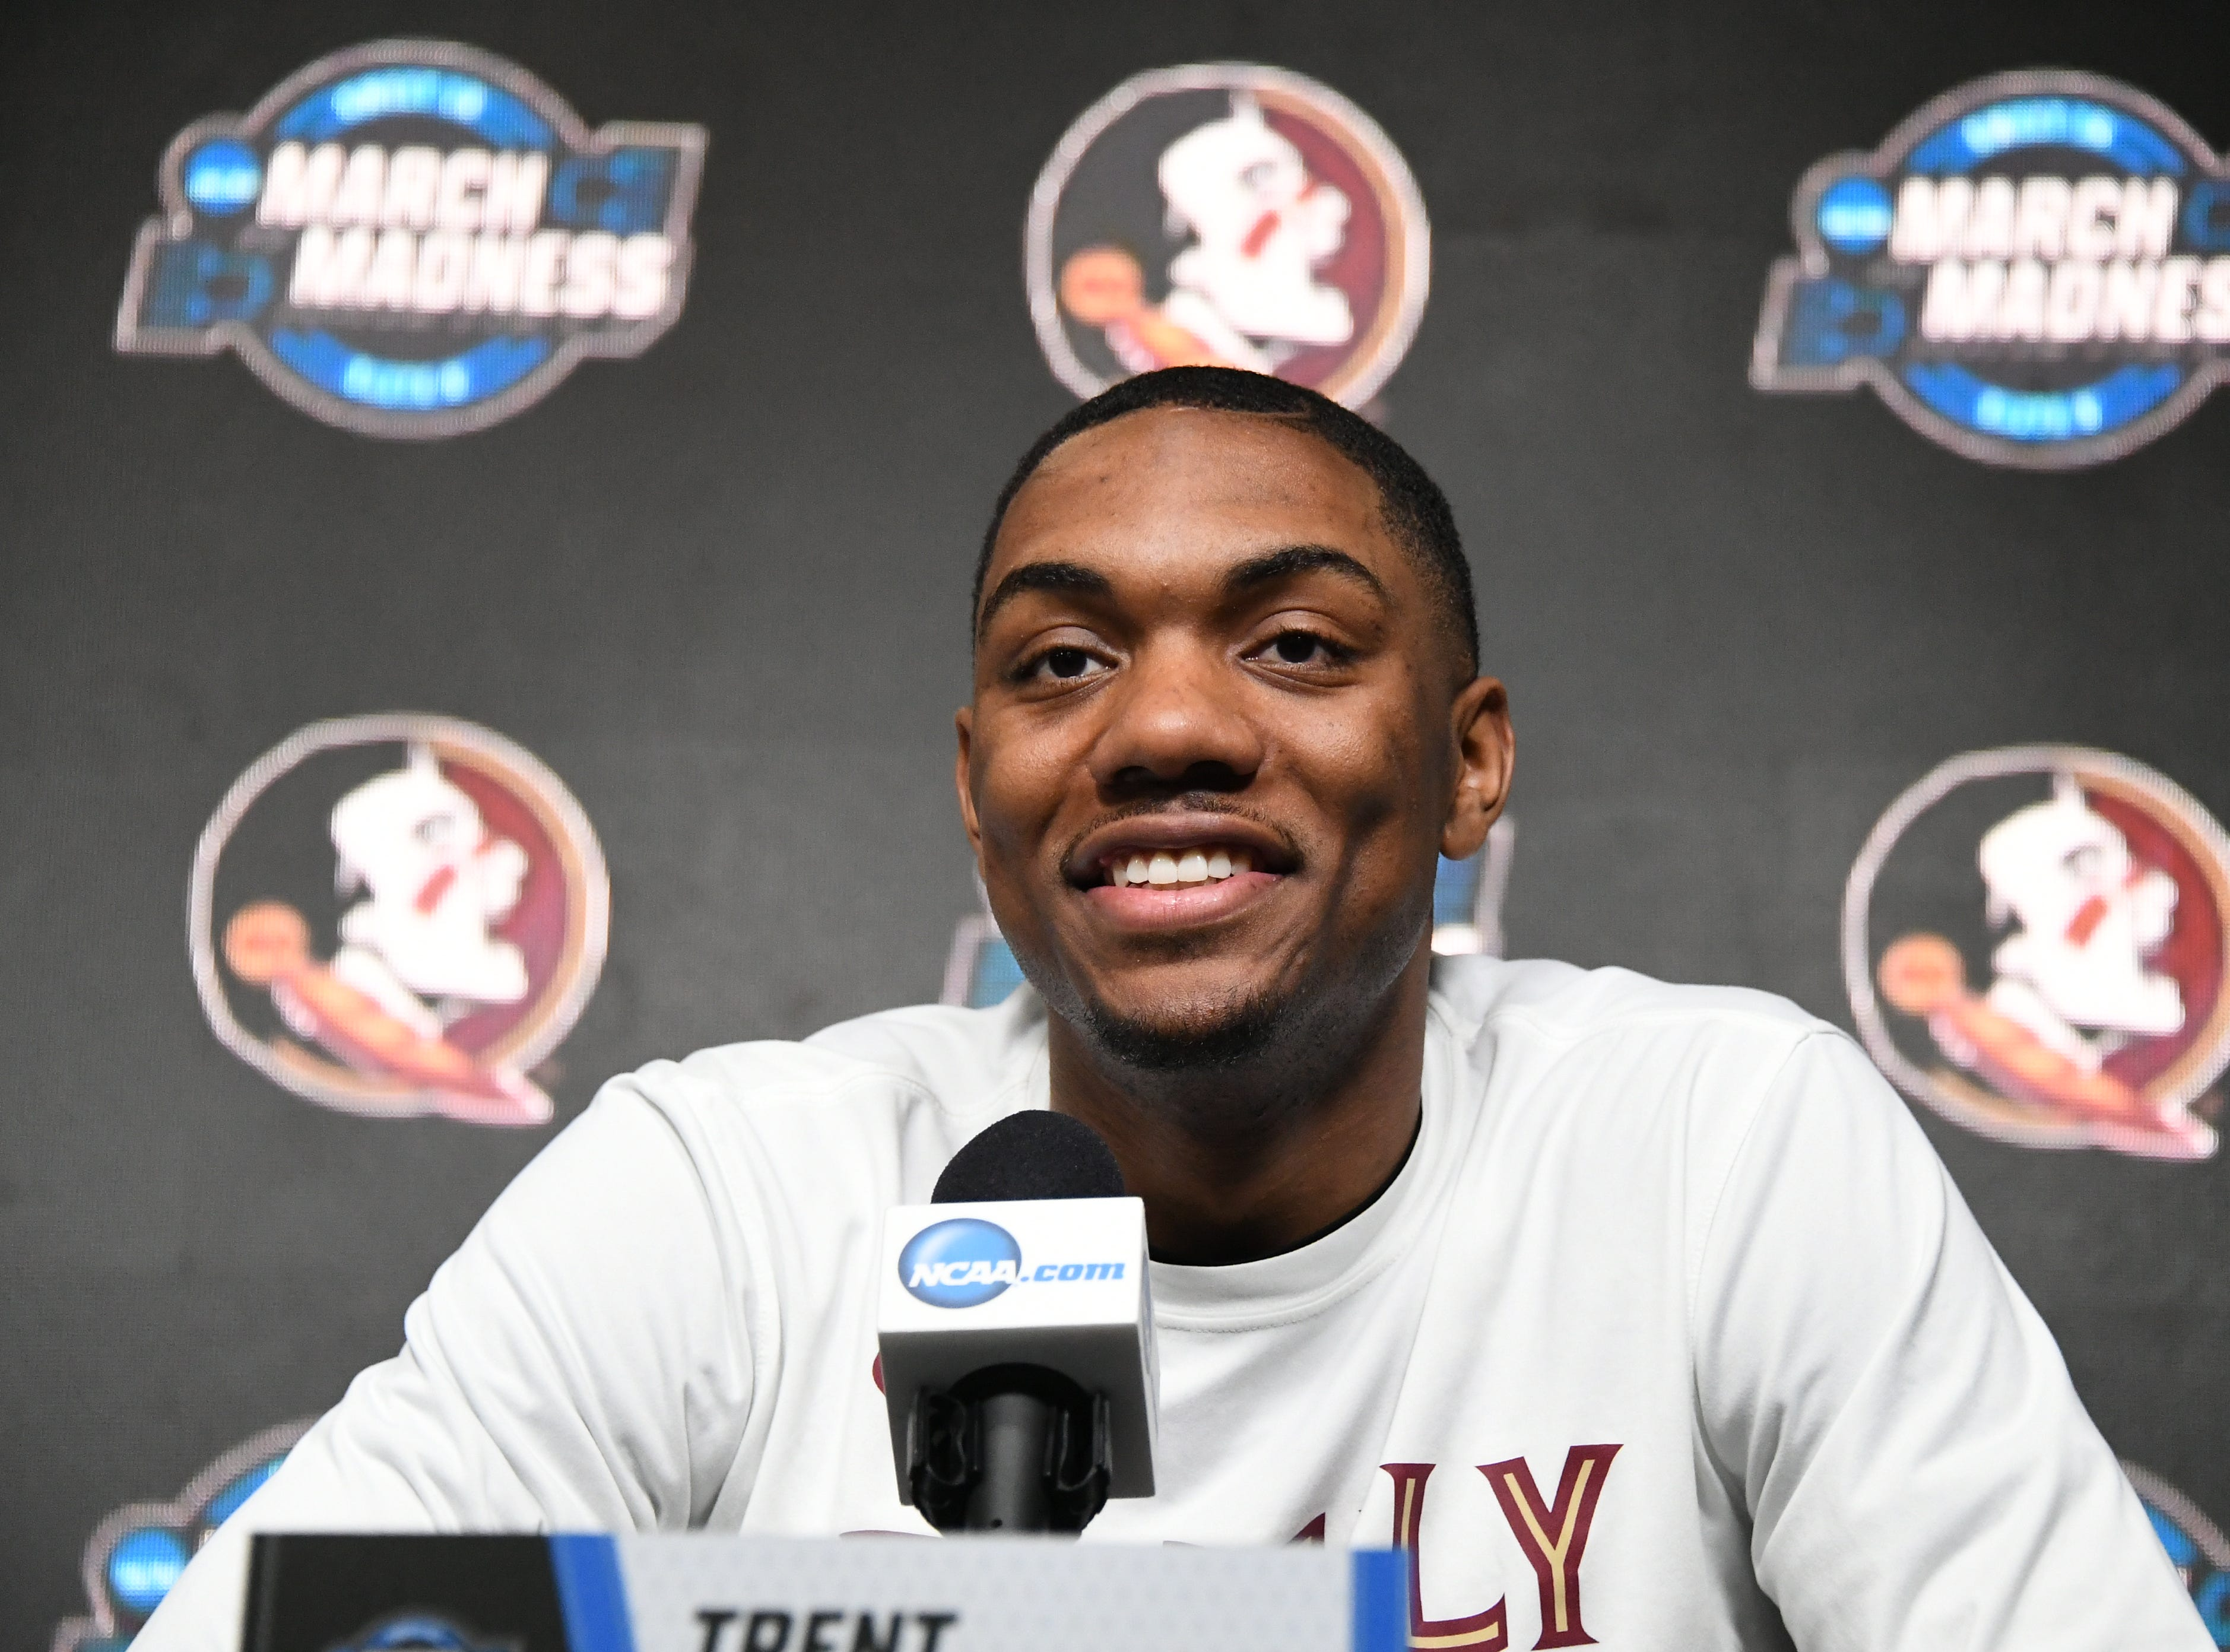 March 27, 2019; Anaheim, CA, USA; Florida State Seminoles guard Trent Forrest (3) speaks with media during practice for the west regional of the 2019 NCAA Tournament at Honda Center. Mandatory Credit: Richard Mackson-USA TODAY Sports